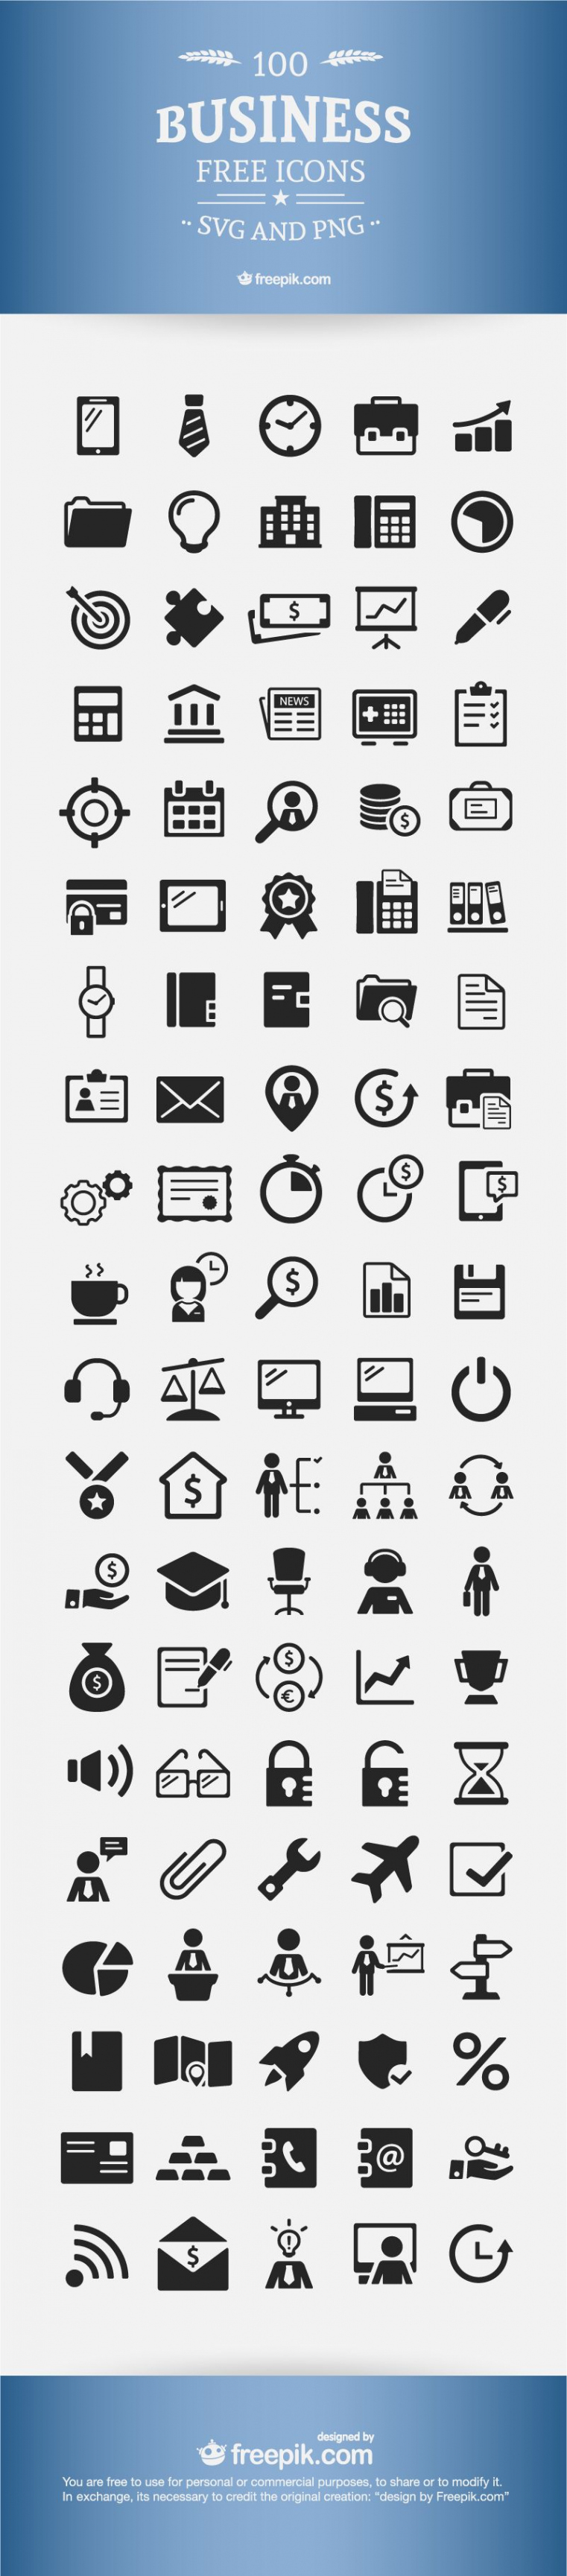 Eine Probe von  Download Free Business Icons  100% Vectors  Scrapbook  Icons Vorlage Lebenslauf Mit Icons